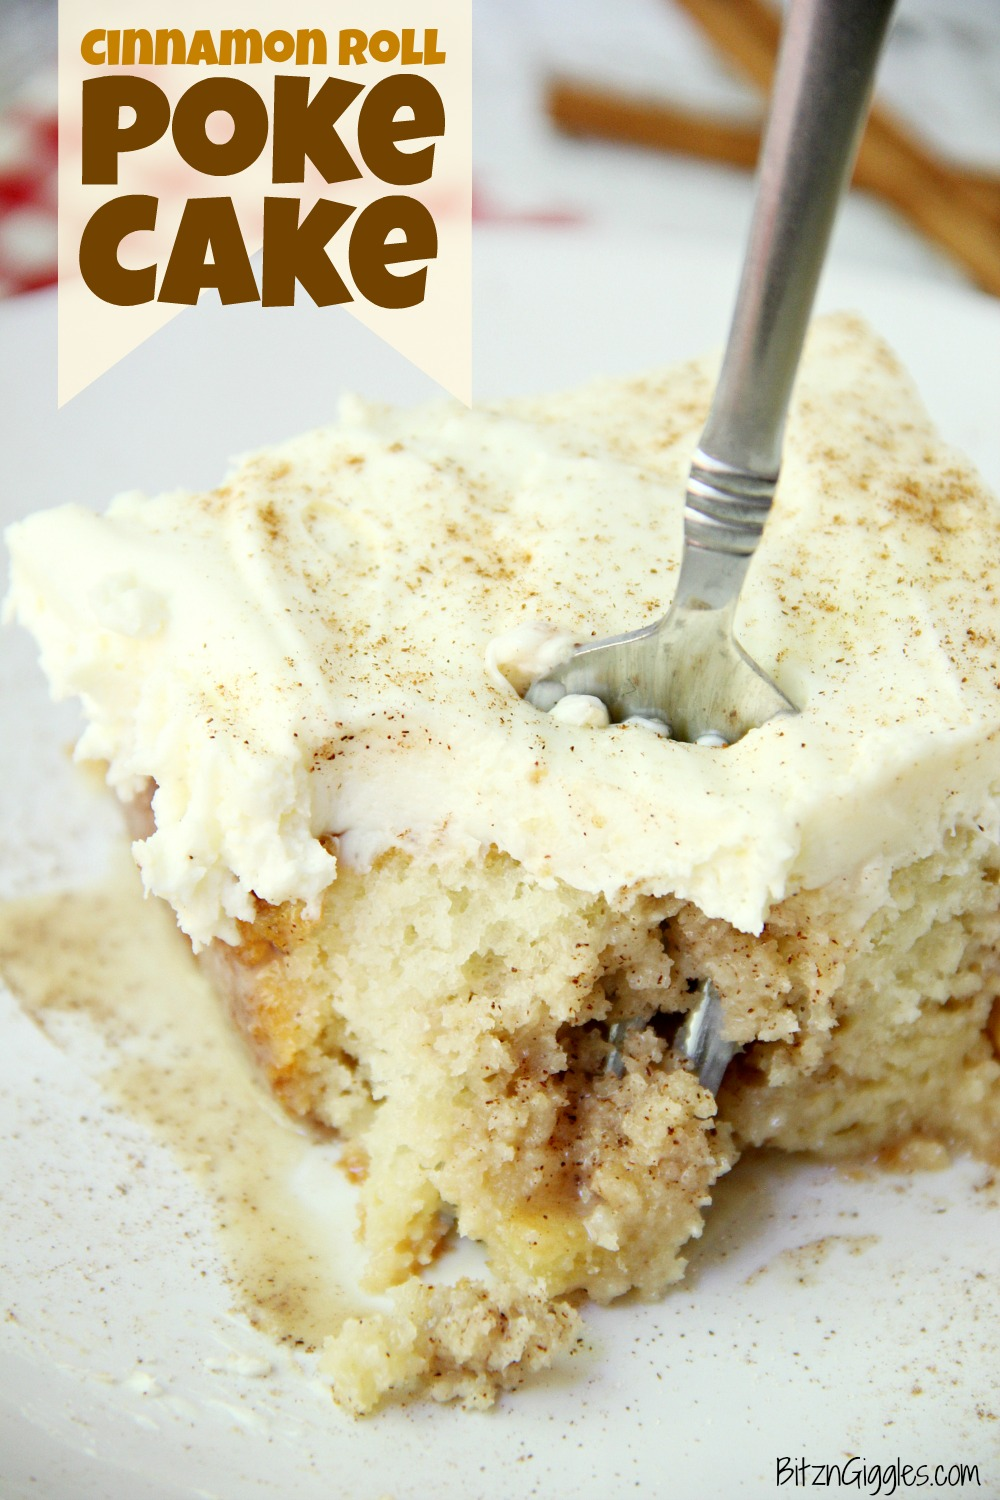 Cinnamon Roll Poke Cake - A soft and moist poke cake filled with a sweet cinnamon filling and topped with a homemade cream cheese frosting that melts in your mouth.